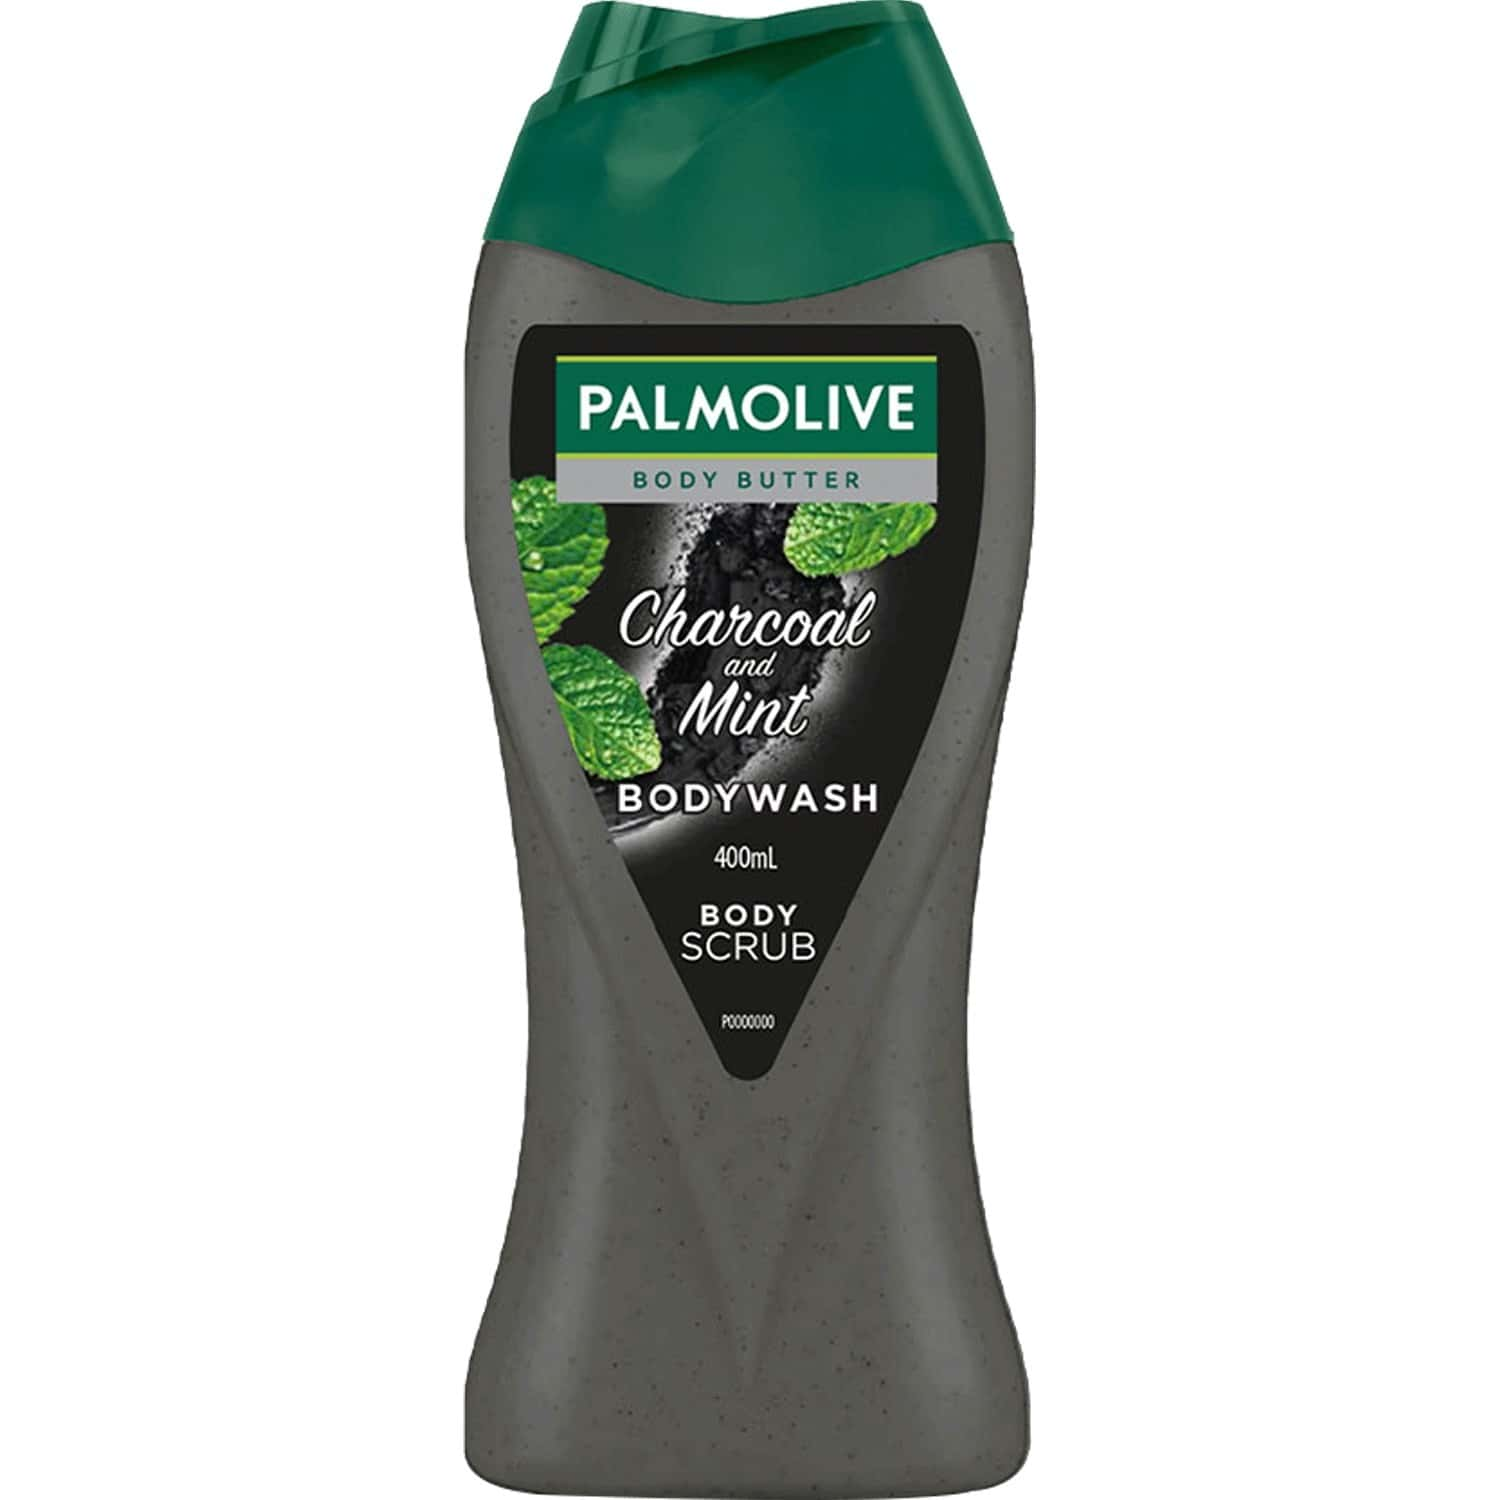 Palmolive Body Wash Coconut Joy Crme Based Exfoliator With Real Apricot Seeds And Jojoba Butter Extracts - 250 Ml